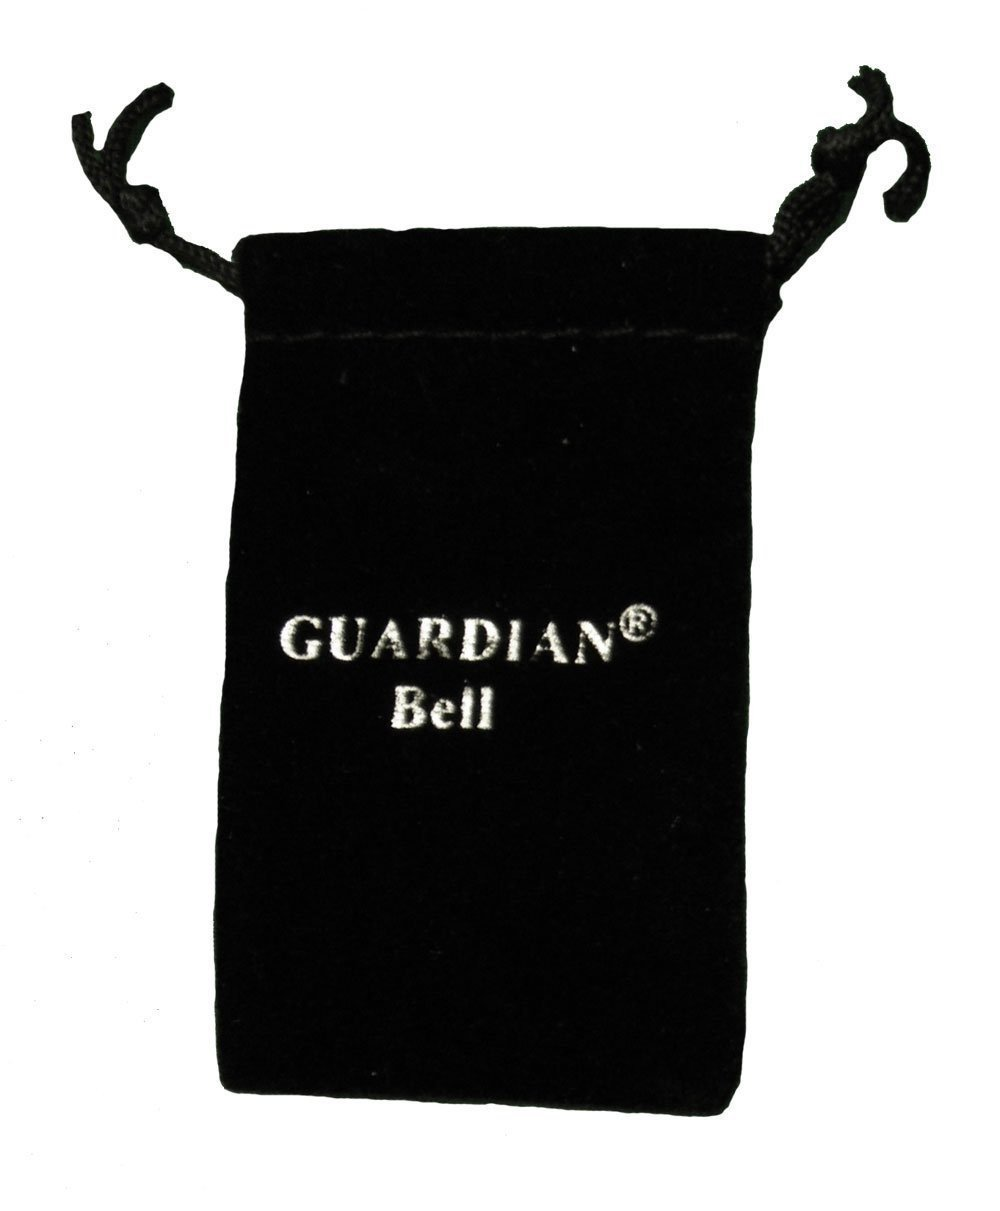 PRINCE ALBERT GUARDIAN BIKER BELL WITH HANGER by Guardian® Bell